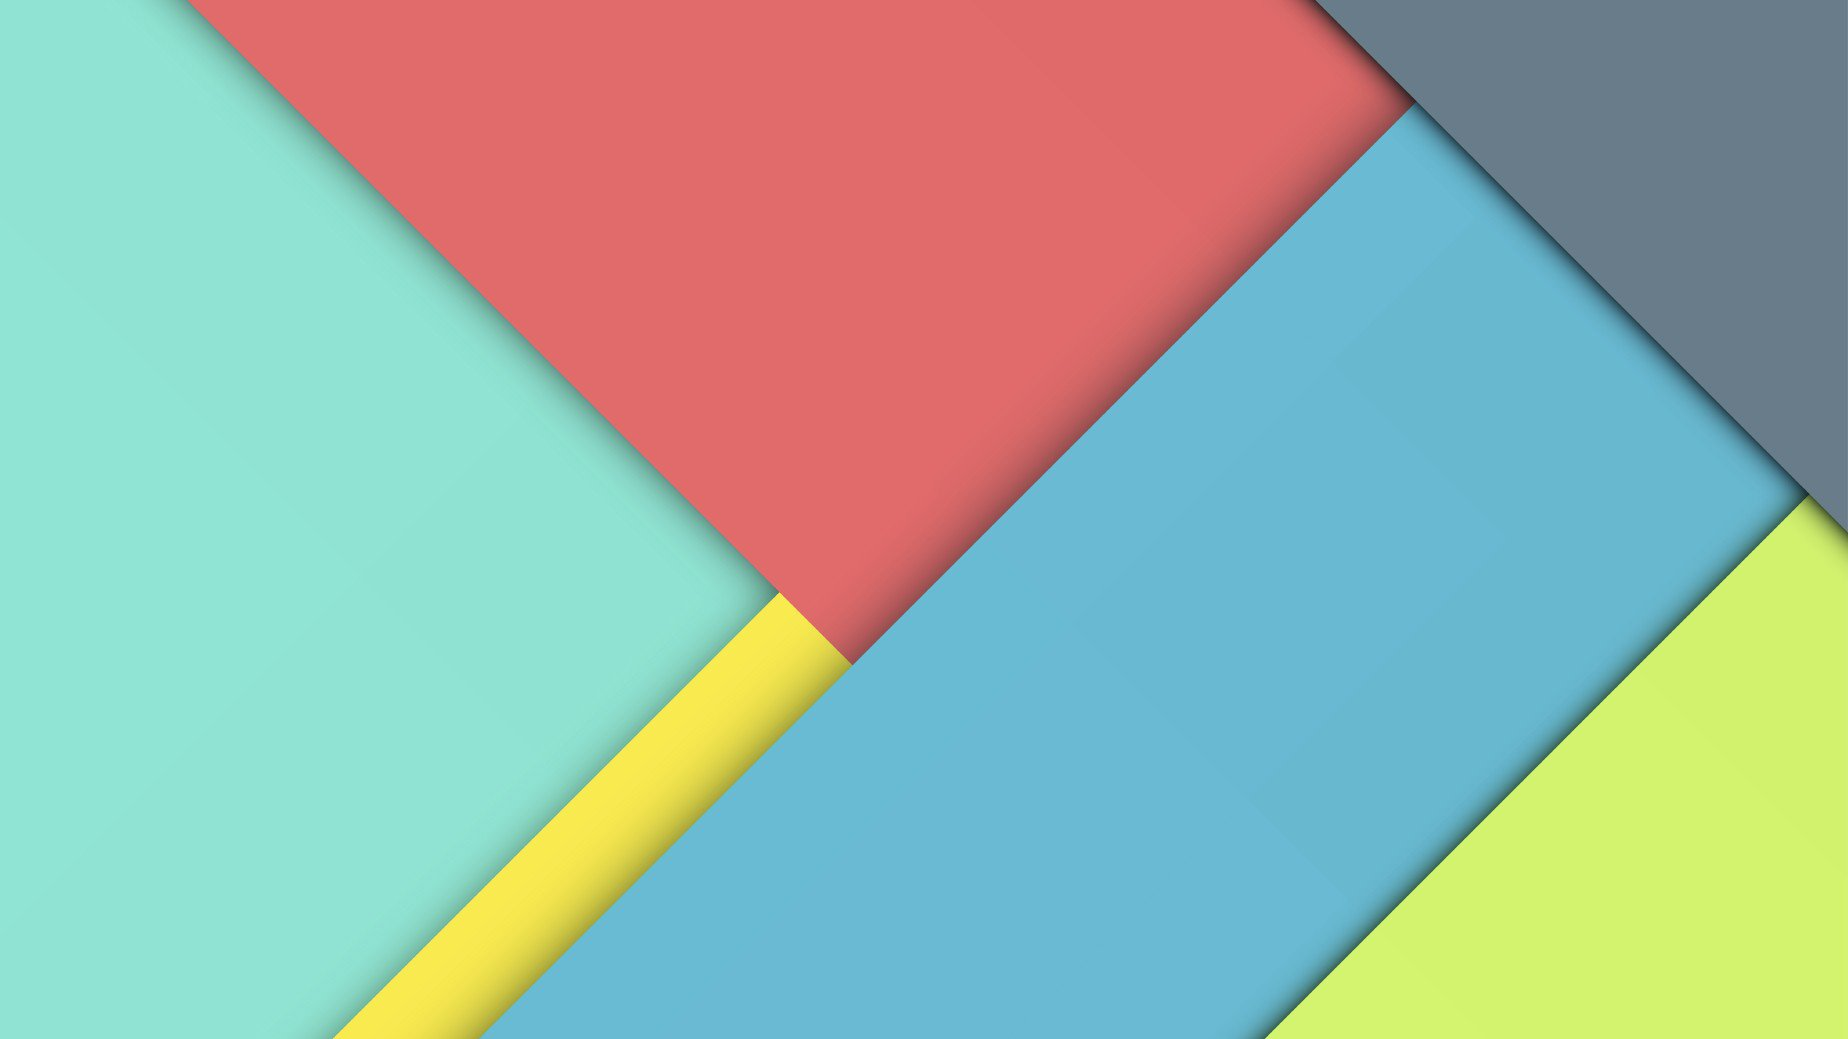 Material Design HD, HD Artist, 4k Wallpapers, Images